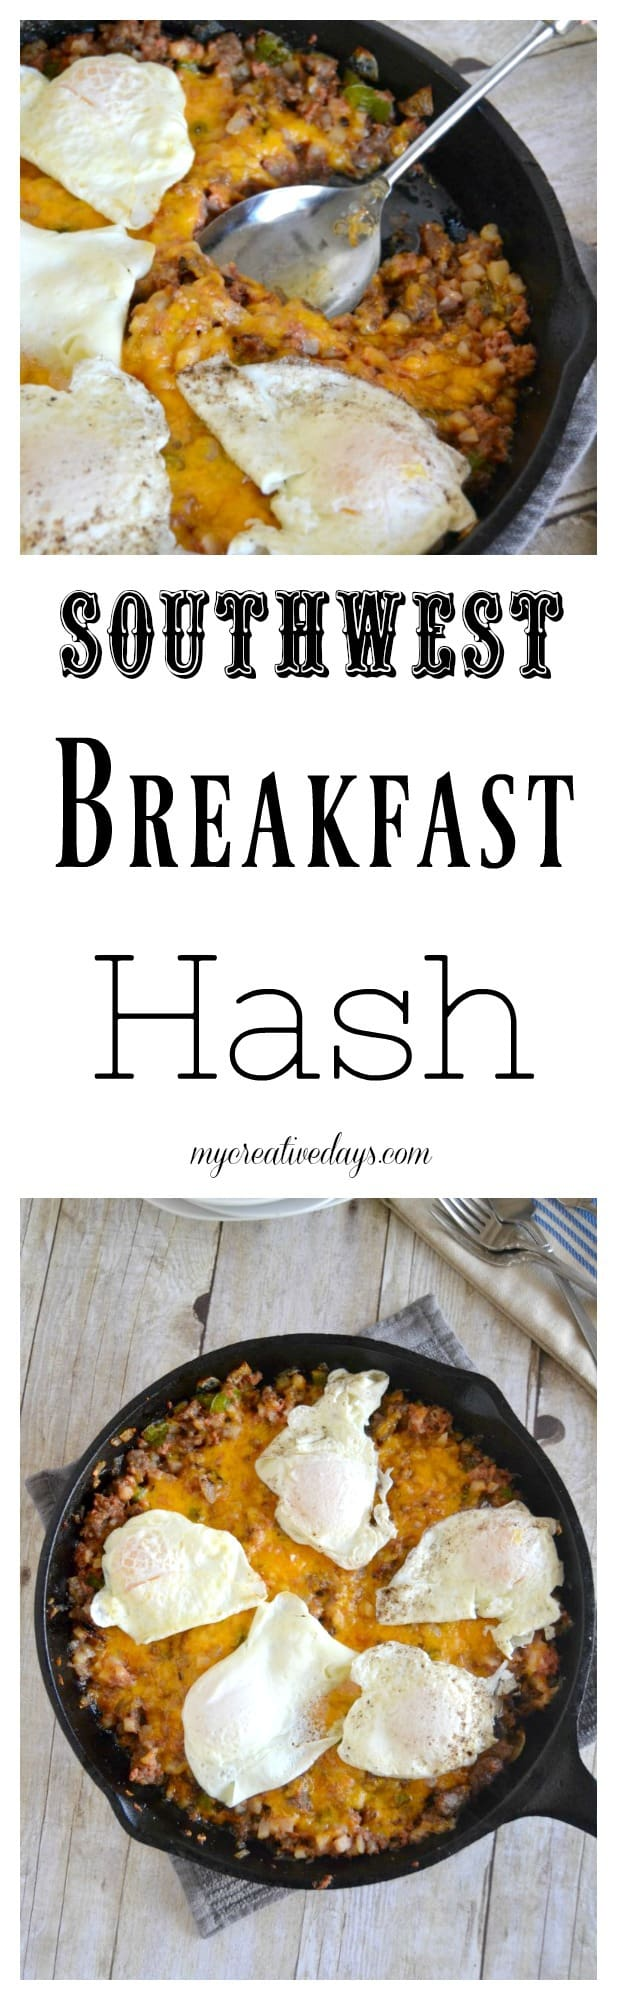 This Southwest Breakfast Hash Recipe Will Be A Family Favorite